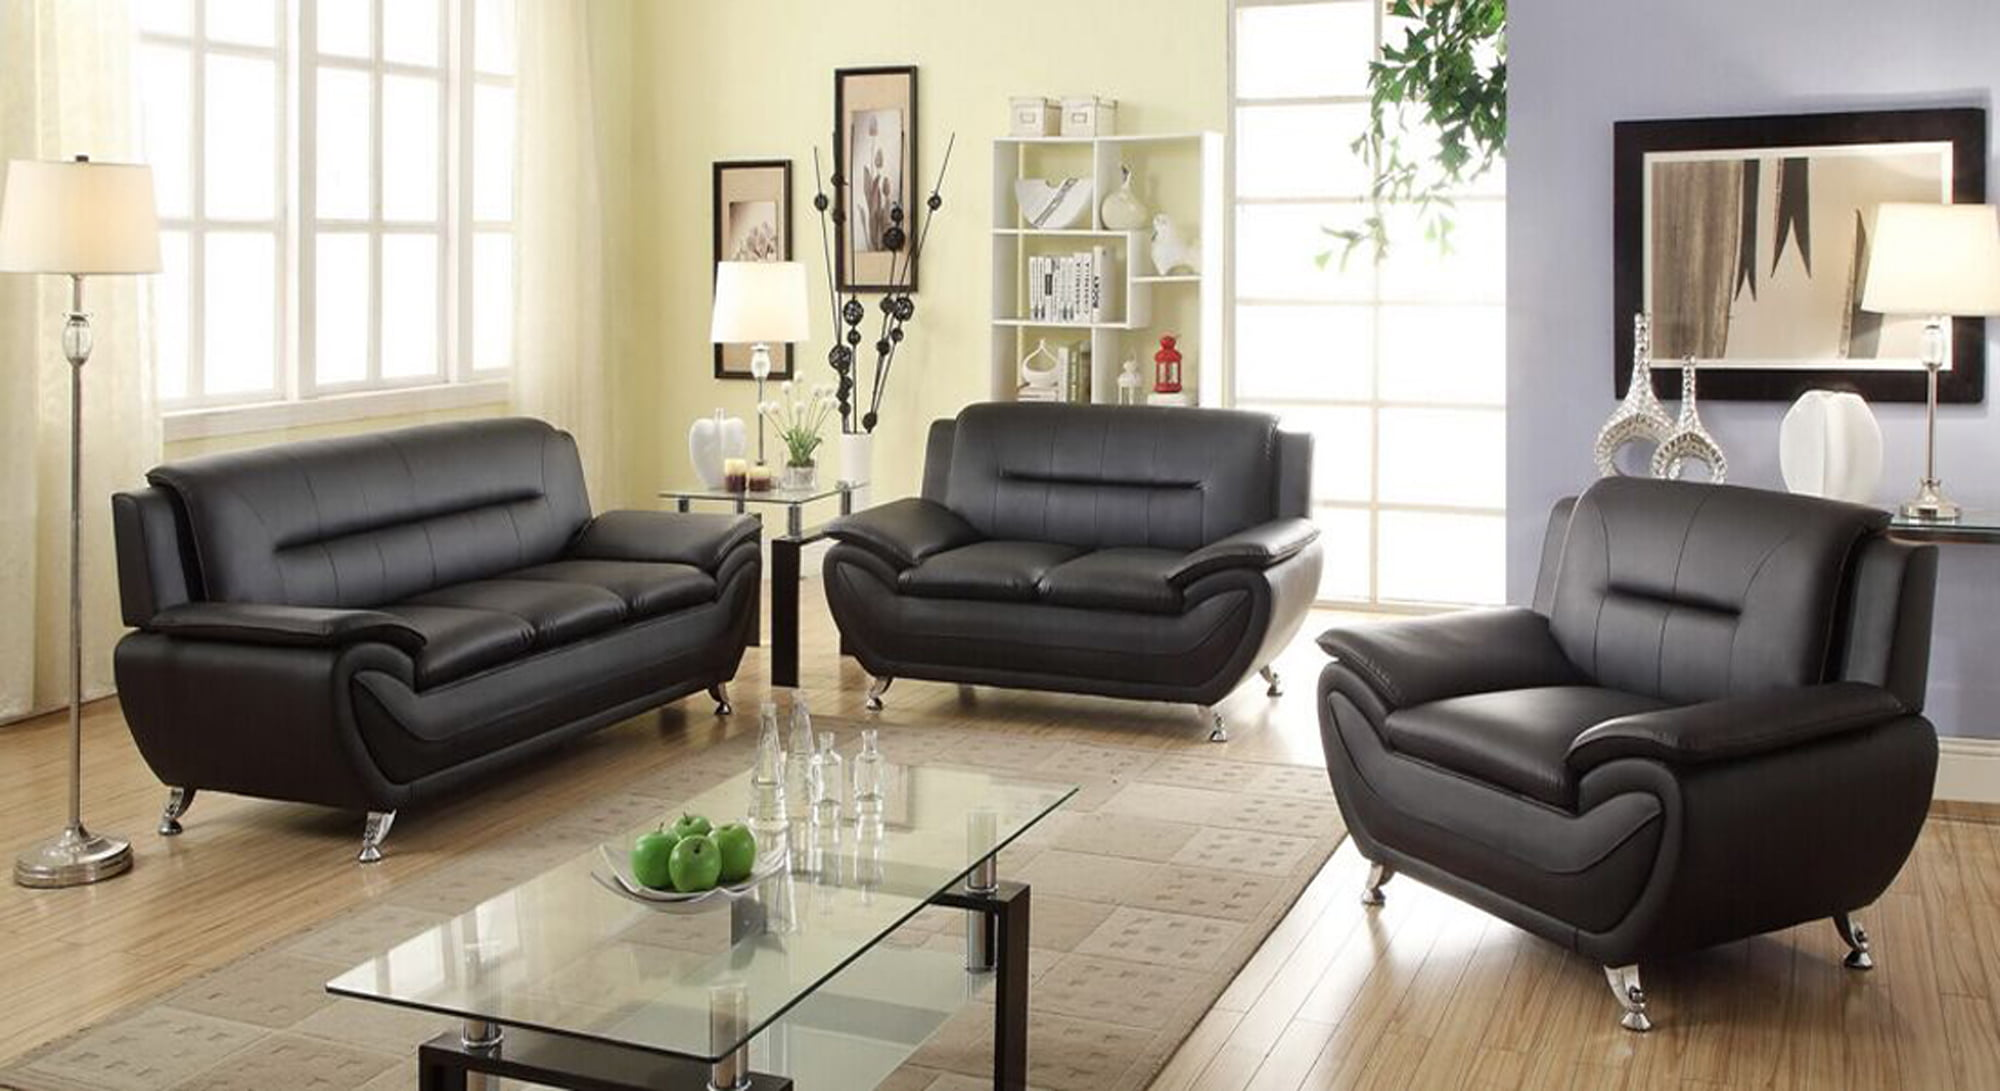 Bon Norton 3 Pc Black Faux Leather Modern Living Room Sofa Set   Walmart.com